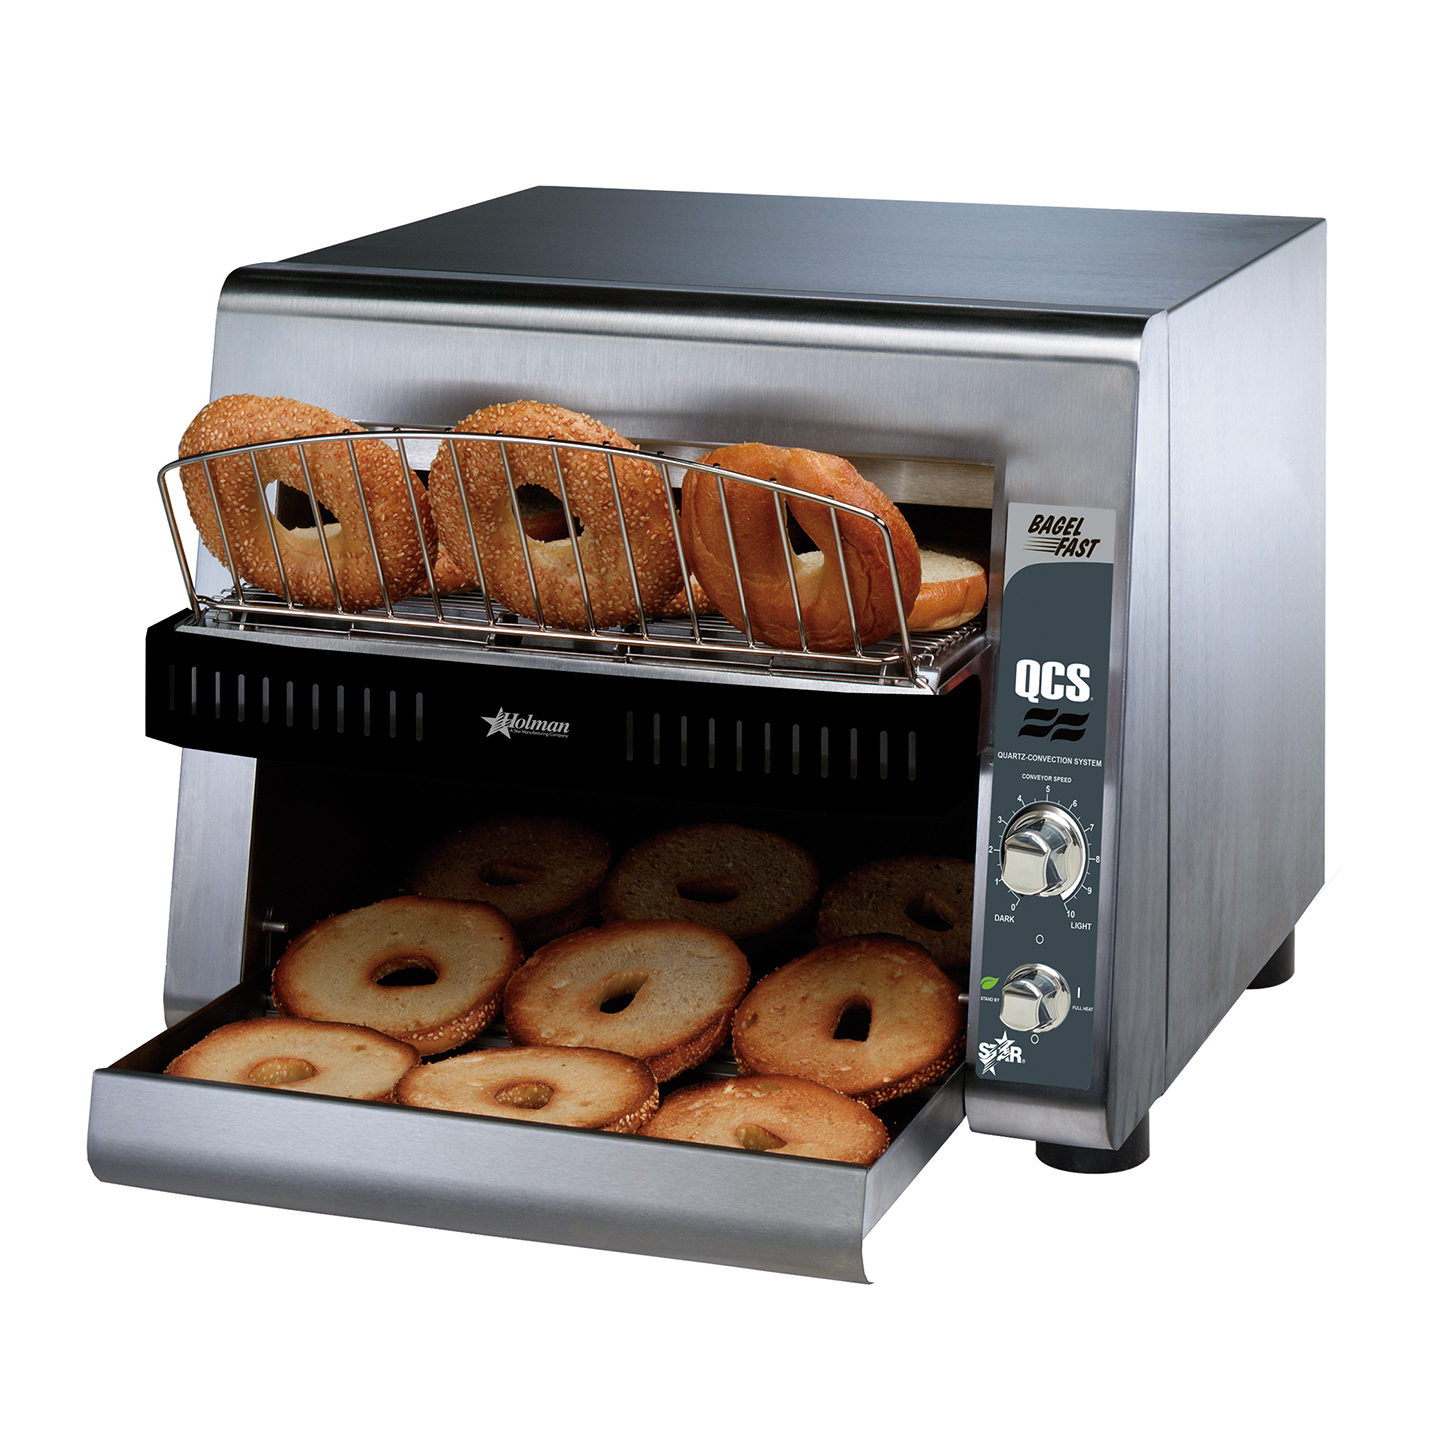 Star QCS3-1600B toaster, conveyor type